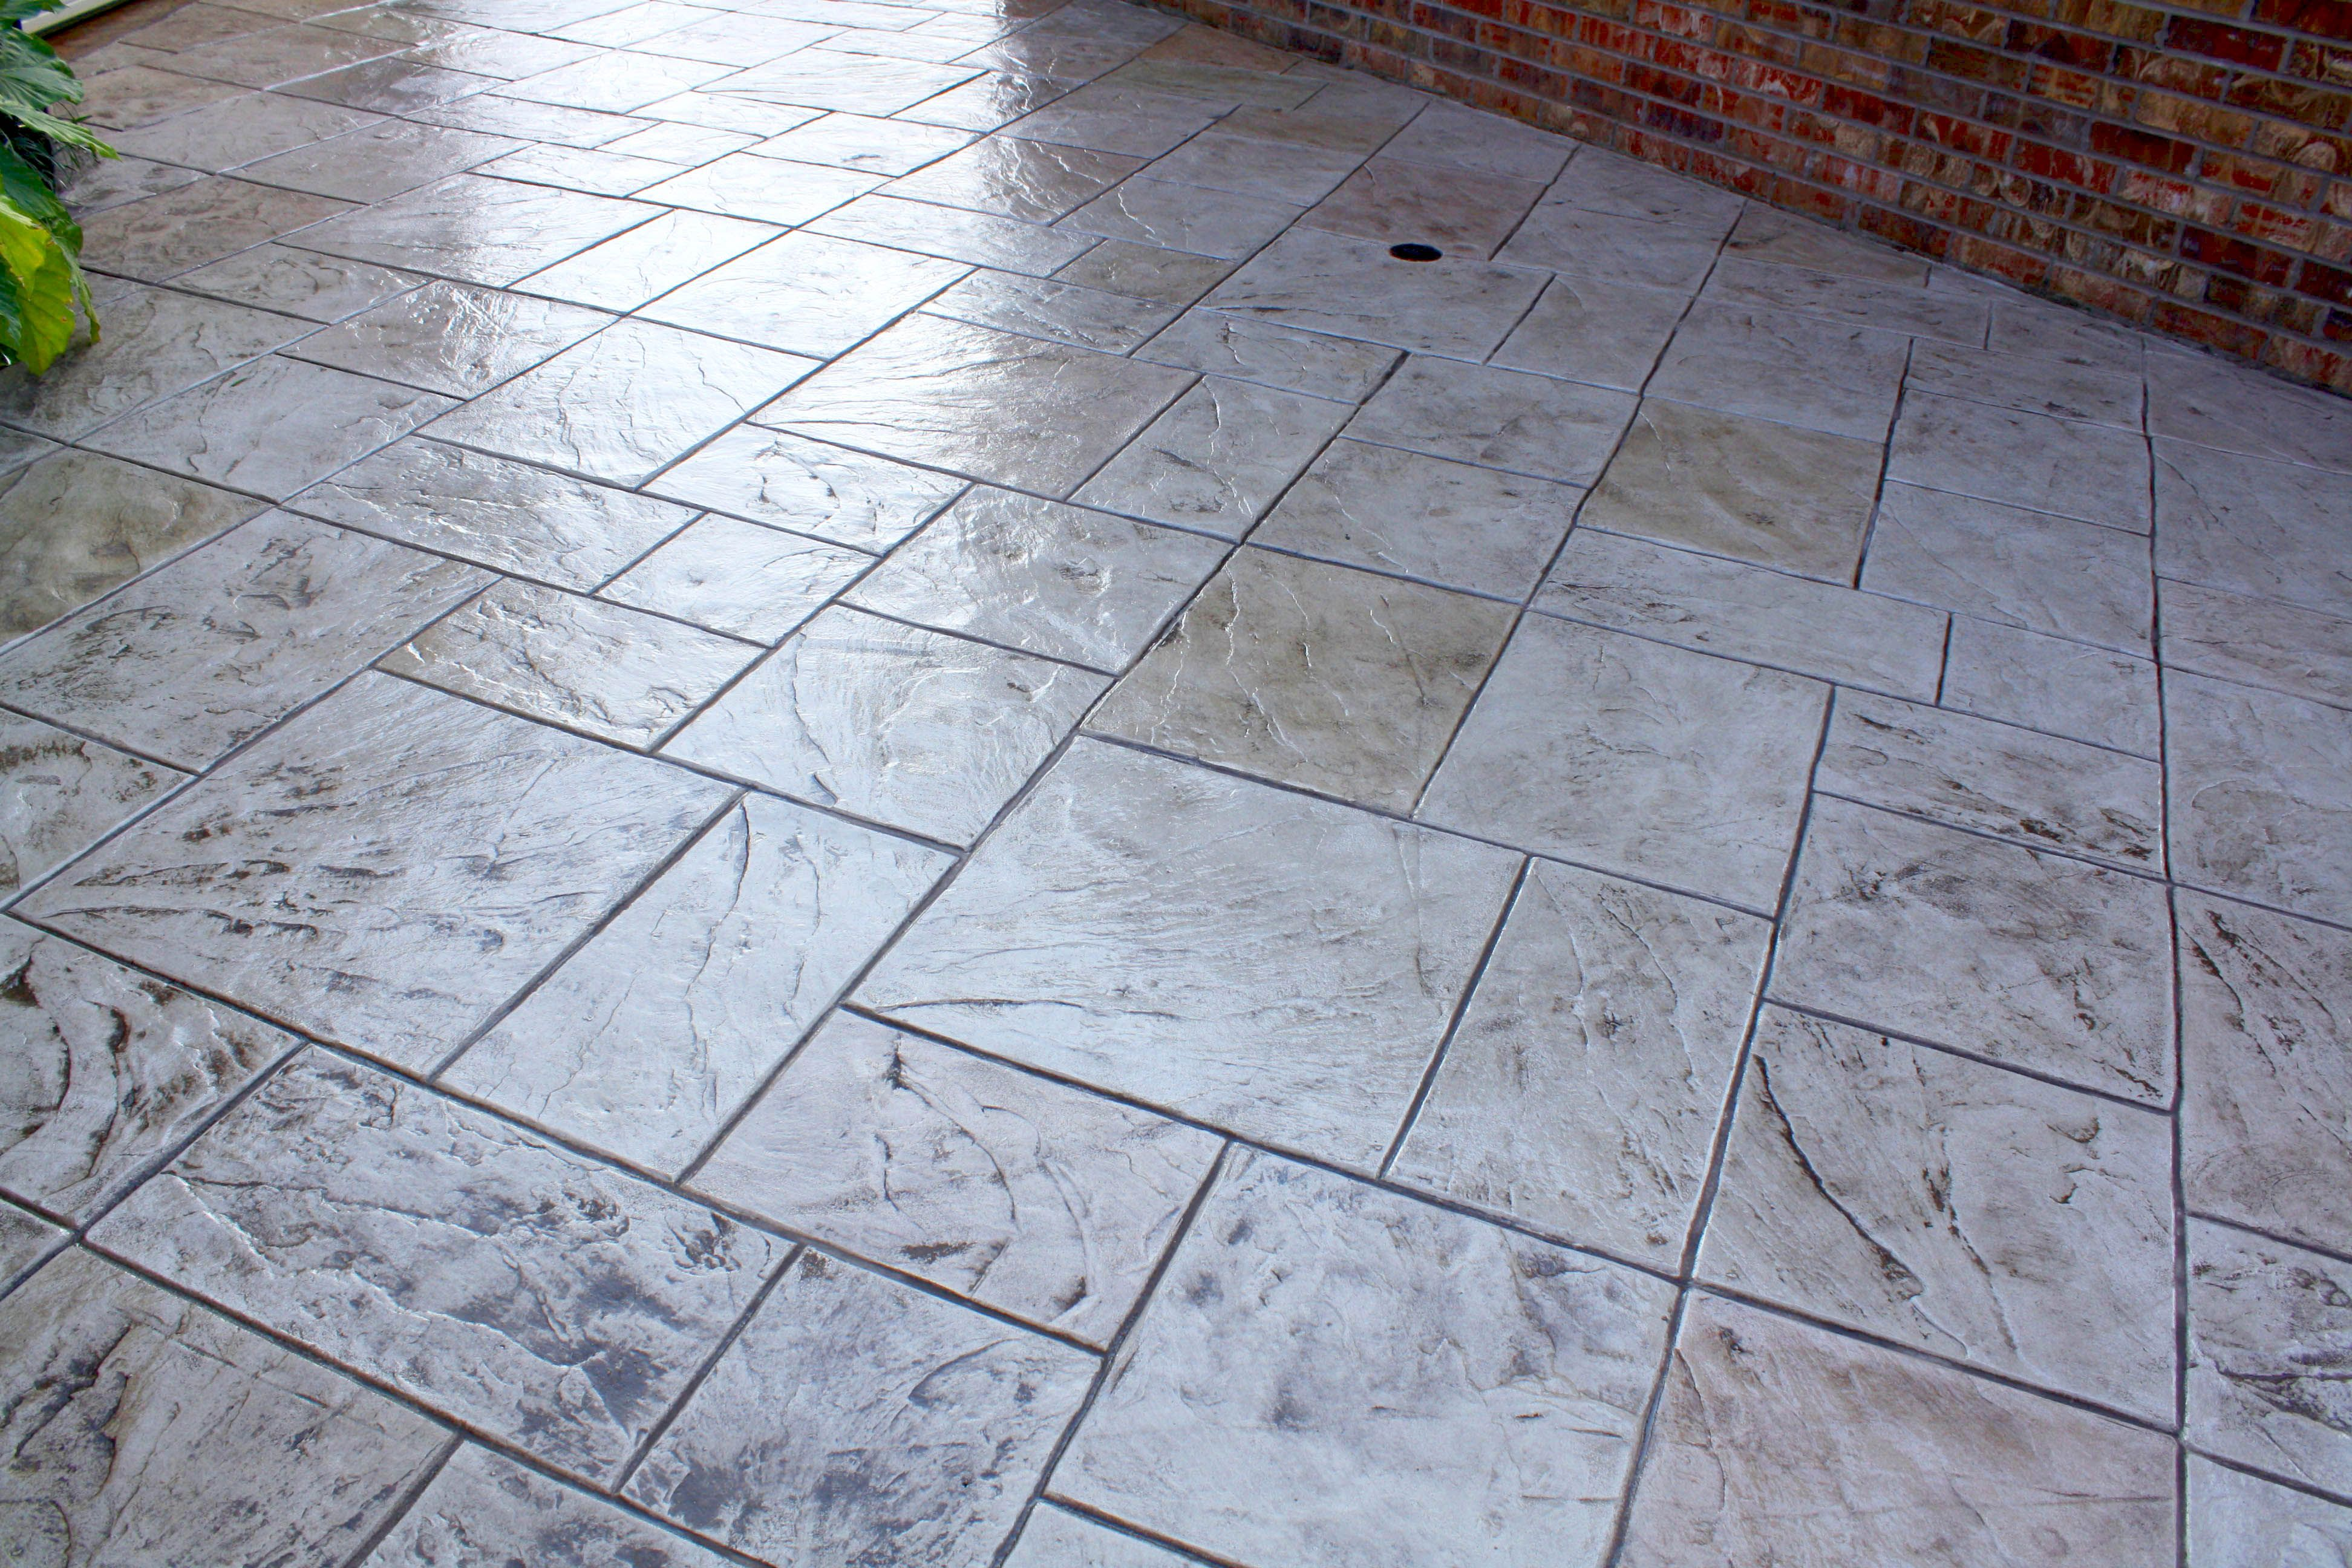 Concrete Patio Stamped With Extra Large Ashlar Slate Tile Pattern Concrete Stamps Concrete Decor Pattern Concrete Concrete